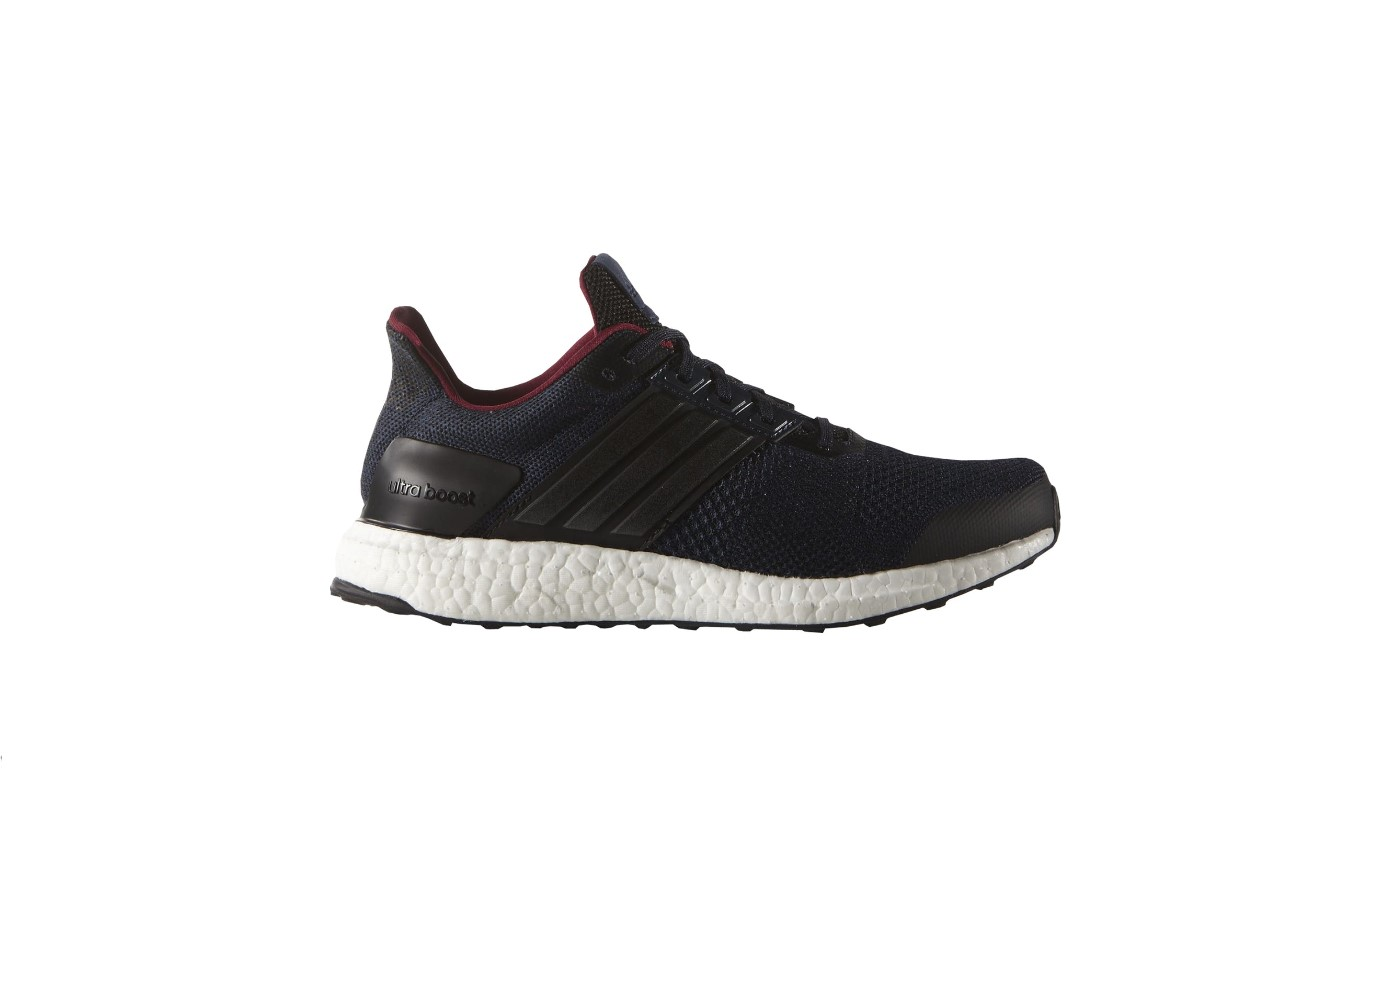 Adidas UltraBoost ST Mens Running Shoe - Alton Sports a2289f68e5413